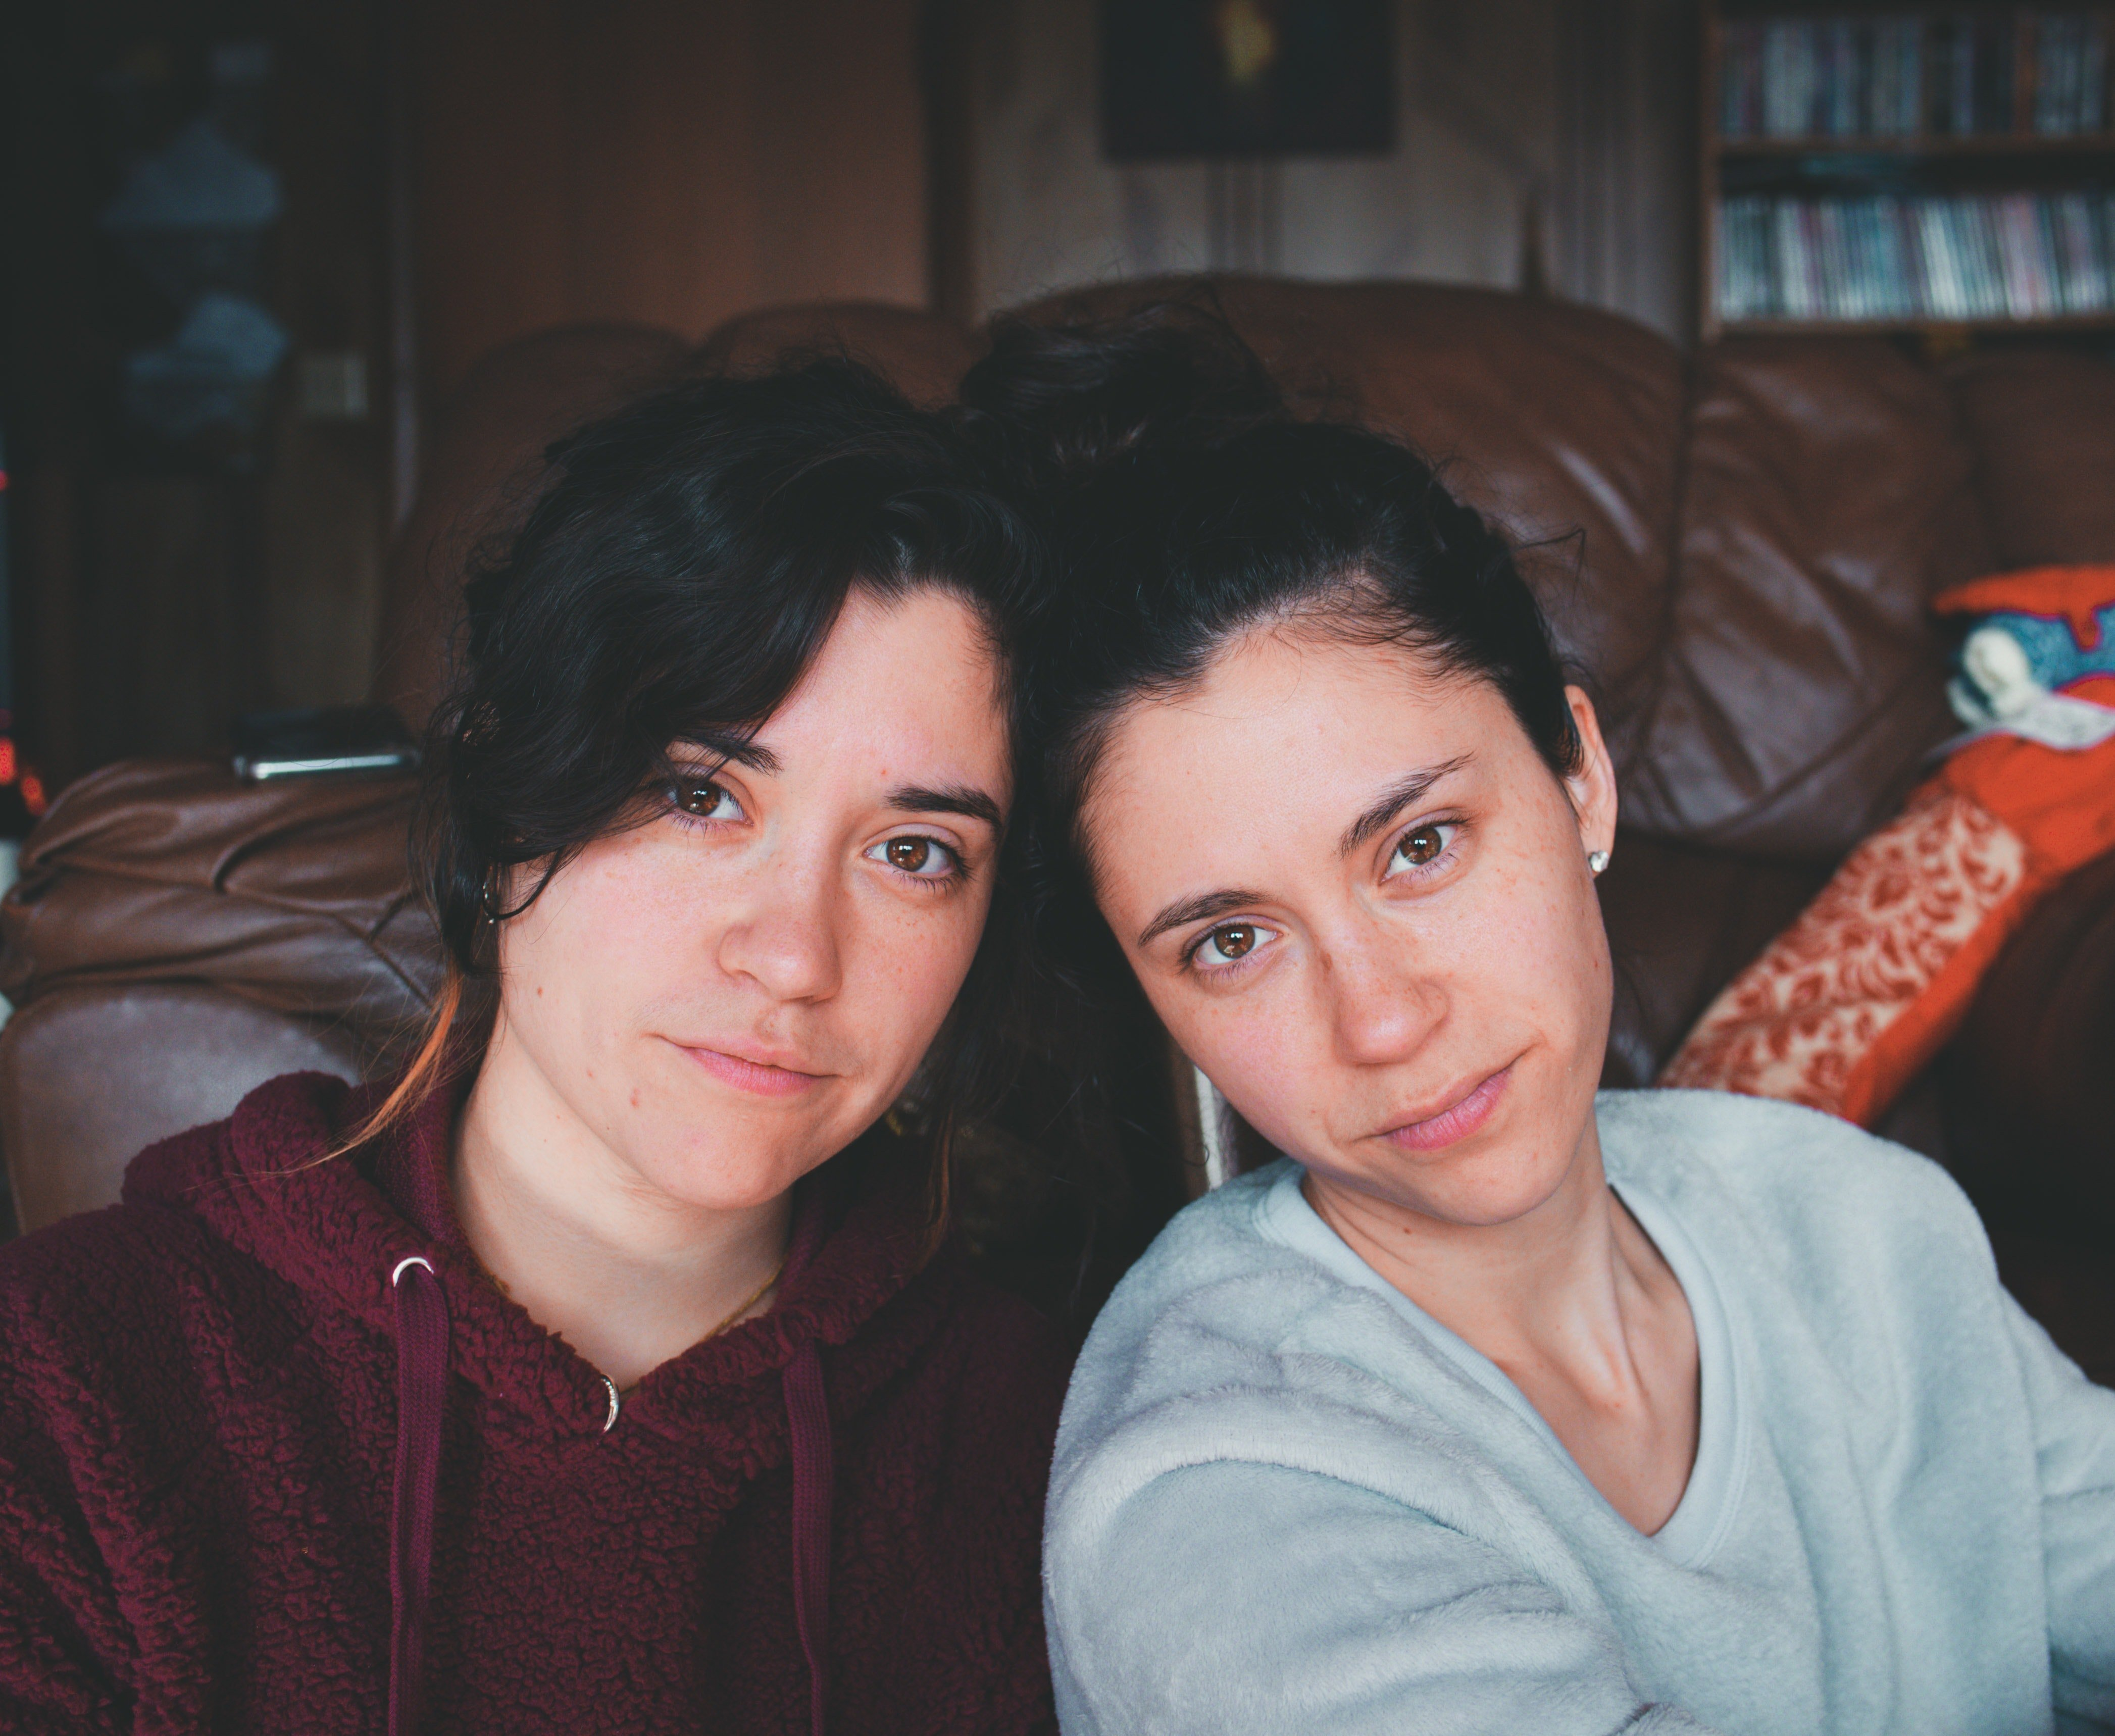 Twin sisters take a picture of themselves in the living room   Photo: Pexels